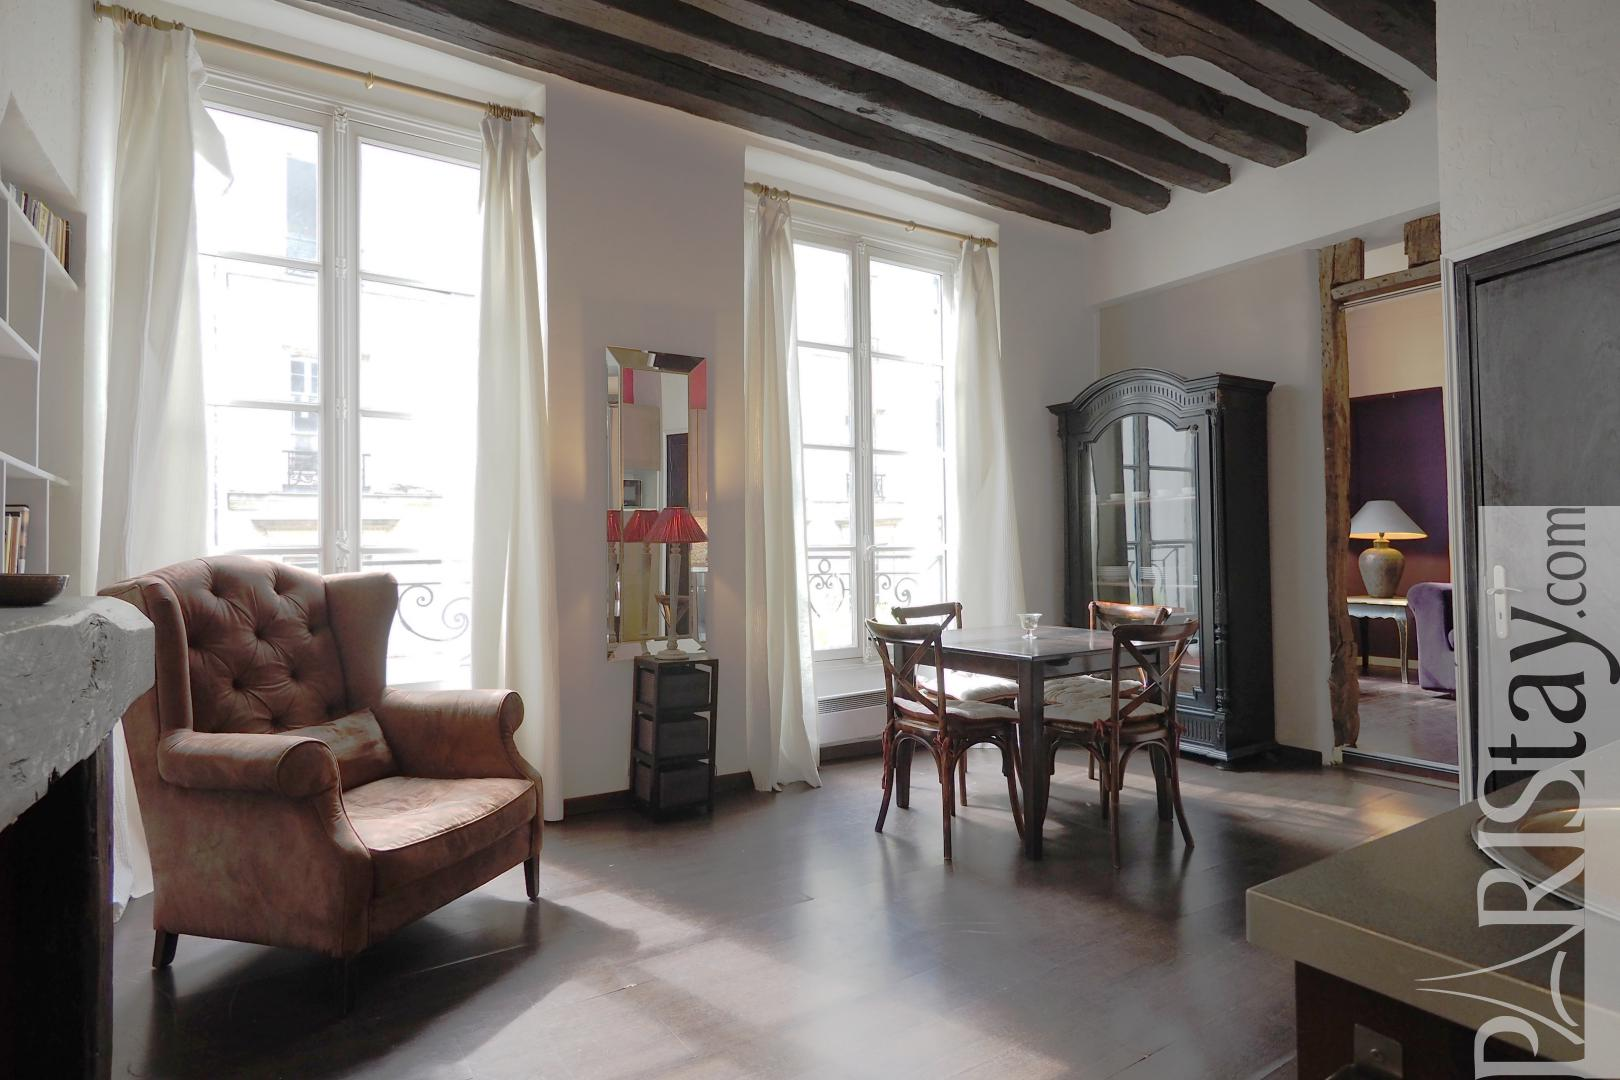 Location longue duree paris le marais appartement t3 meuble - Location appartement meuble paris particulier ...